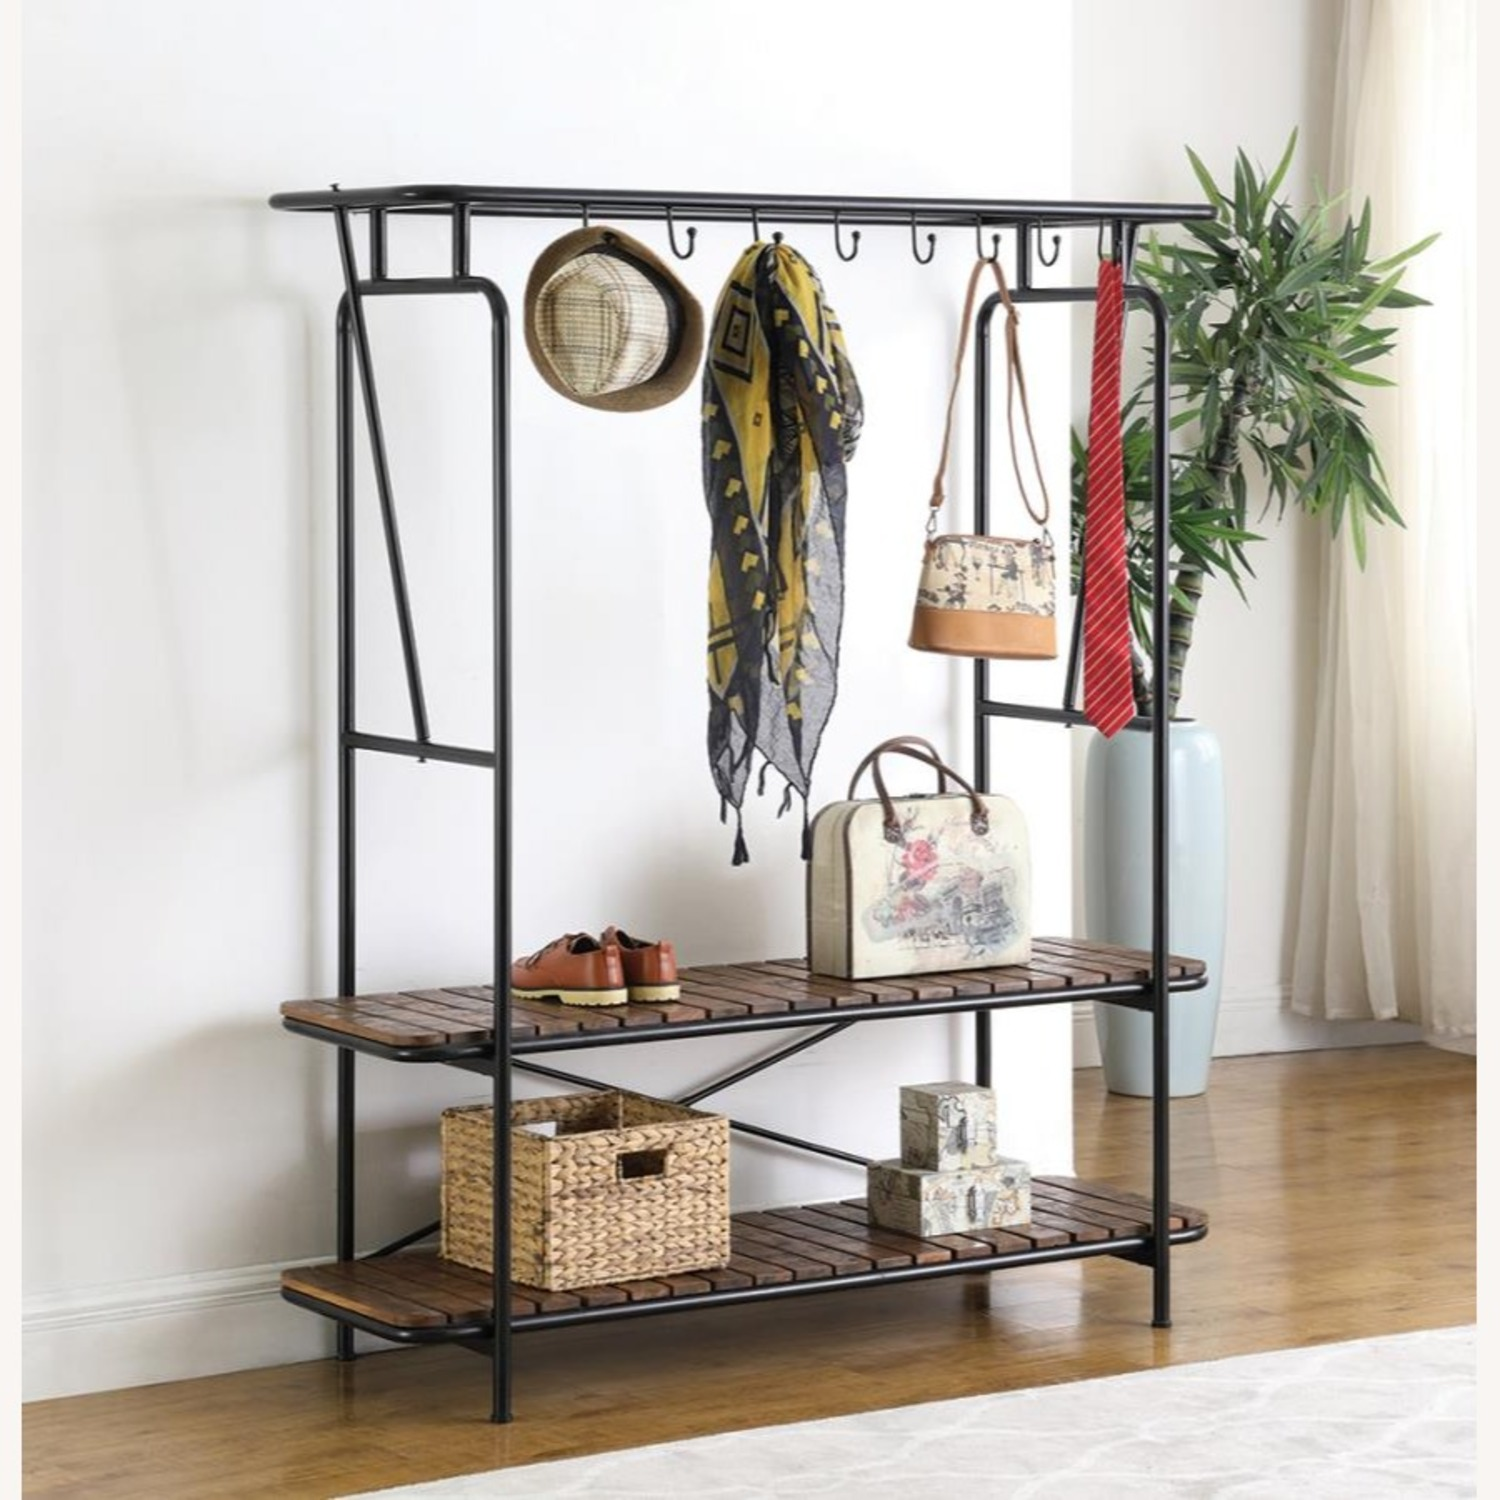 2-In-1 Clothes & Shoe Rack In Tobacco Finish - image-3